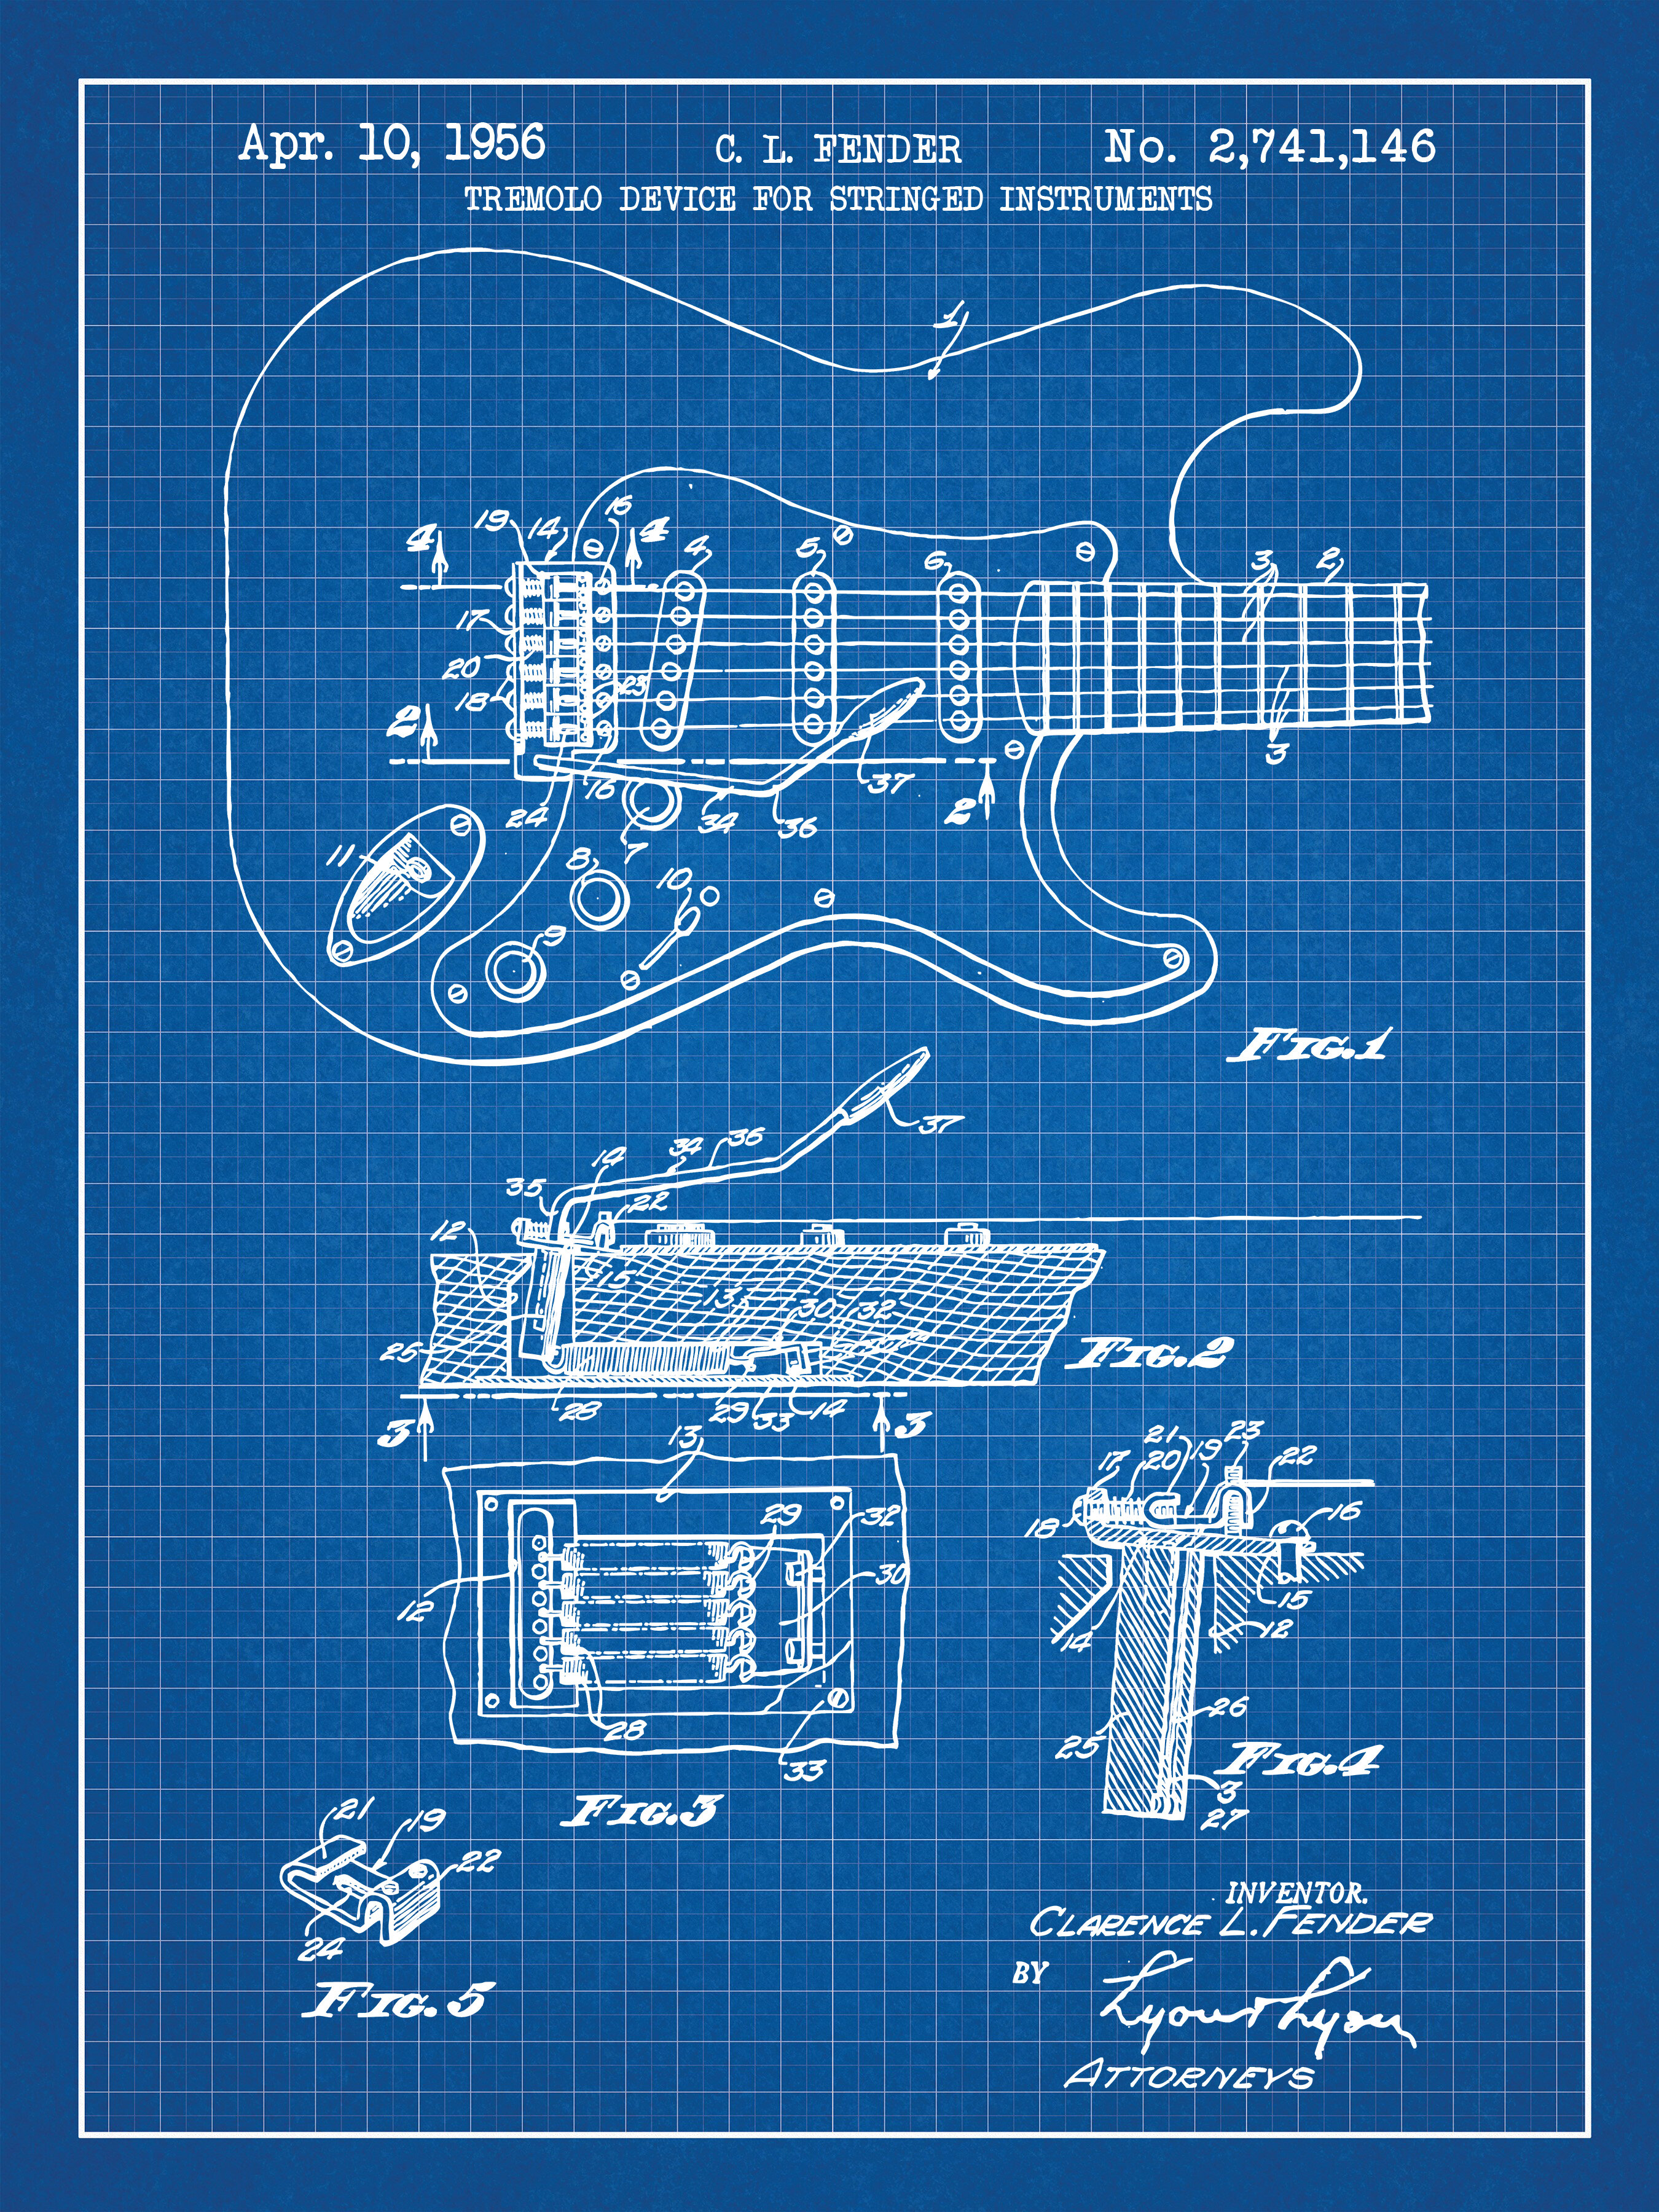 Williston forge fender stratocaster guitar blueprint graphic art williston forge fender stratocaster guitar blueprint graphic art in blue gridwhite ink reviews wayfair malvernweather Choice Image